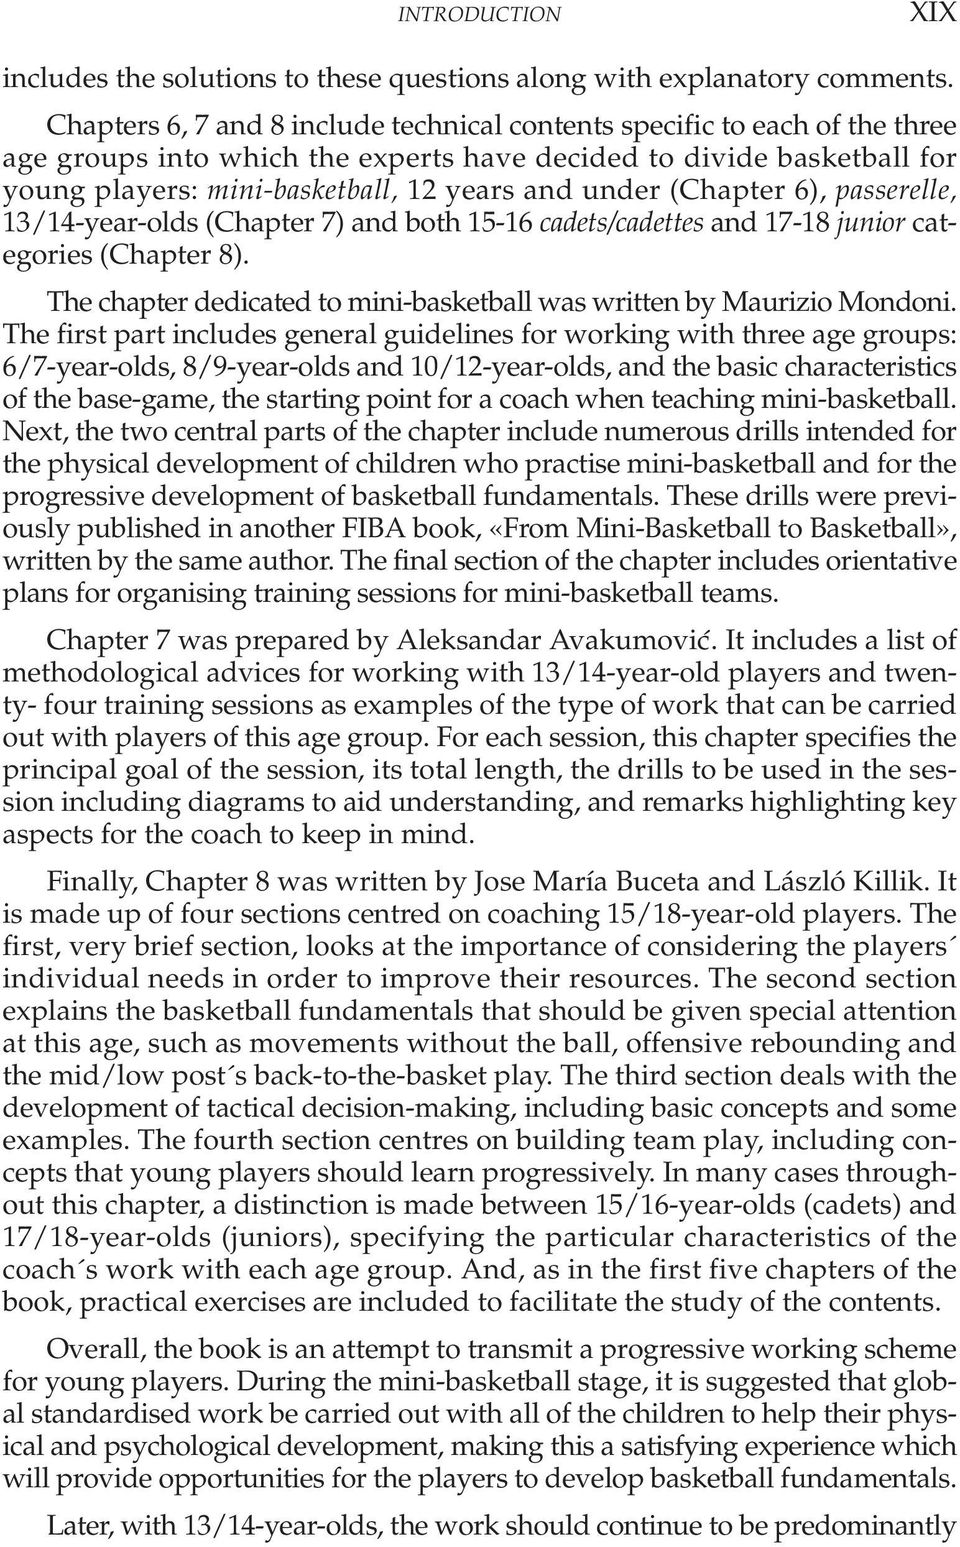 (Chapter 6), passerelle, 13/14-year-olds (Chapter 7) and both 15-16 cadets/cadettes and 17-18 junior categories (Chapter 8). The chapter dedicated to mini-basketball was written by Maurizio Mondoni.